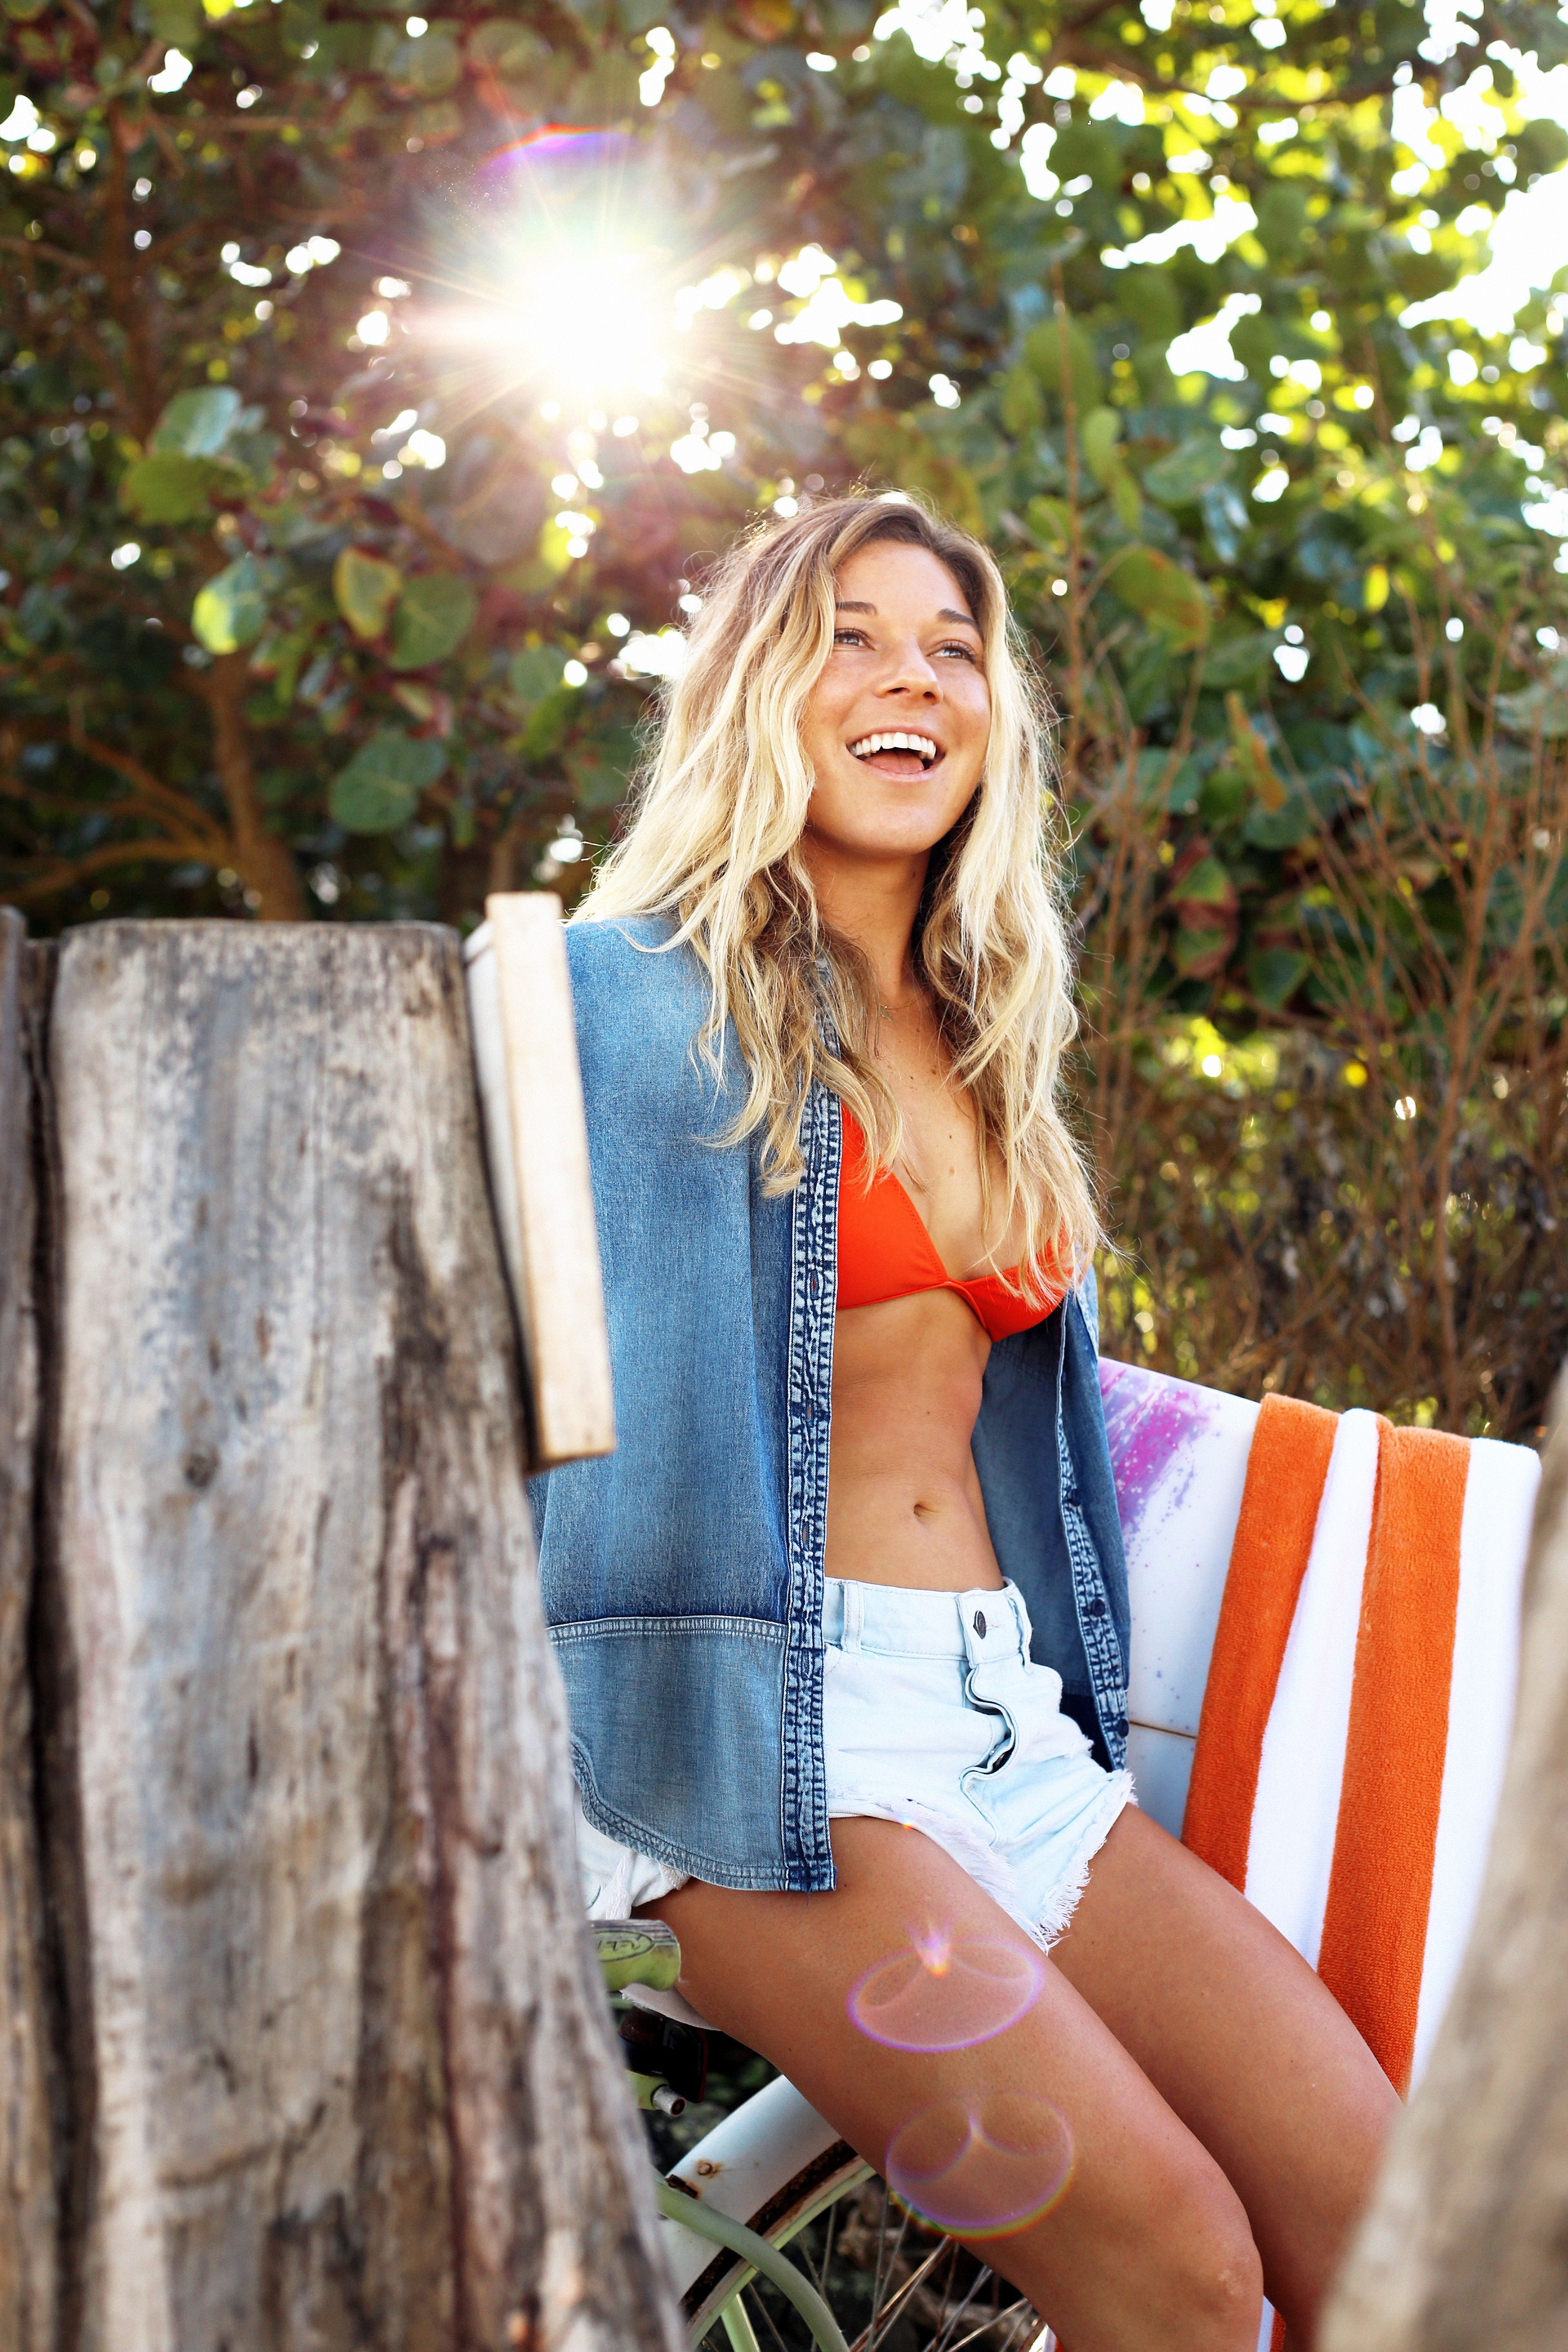 Coco Ho to follow in father Michael Hos footsteps | St